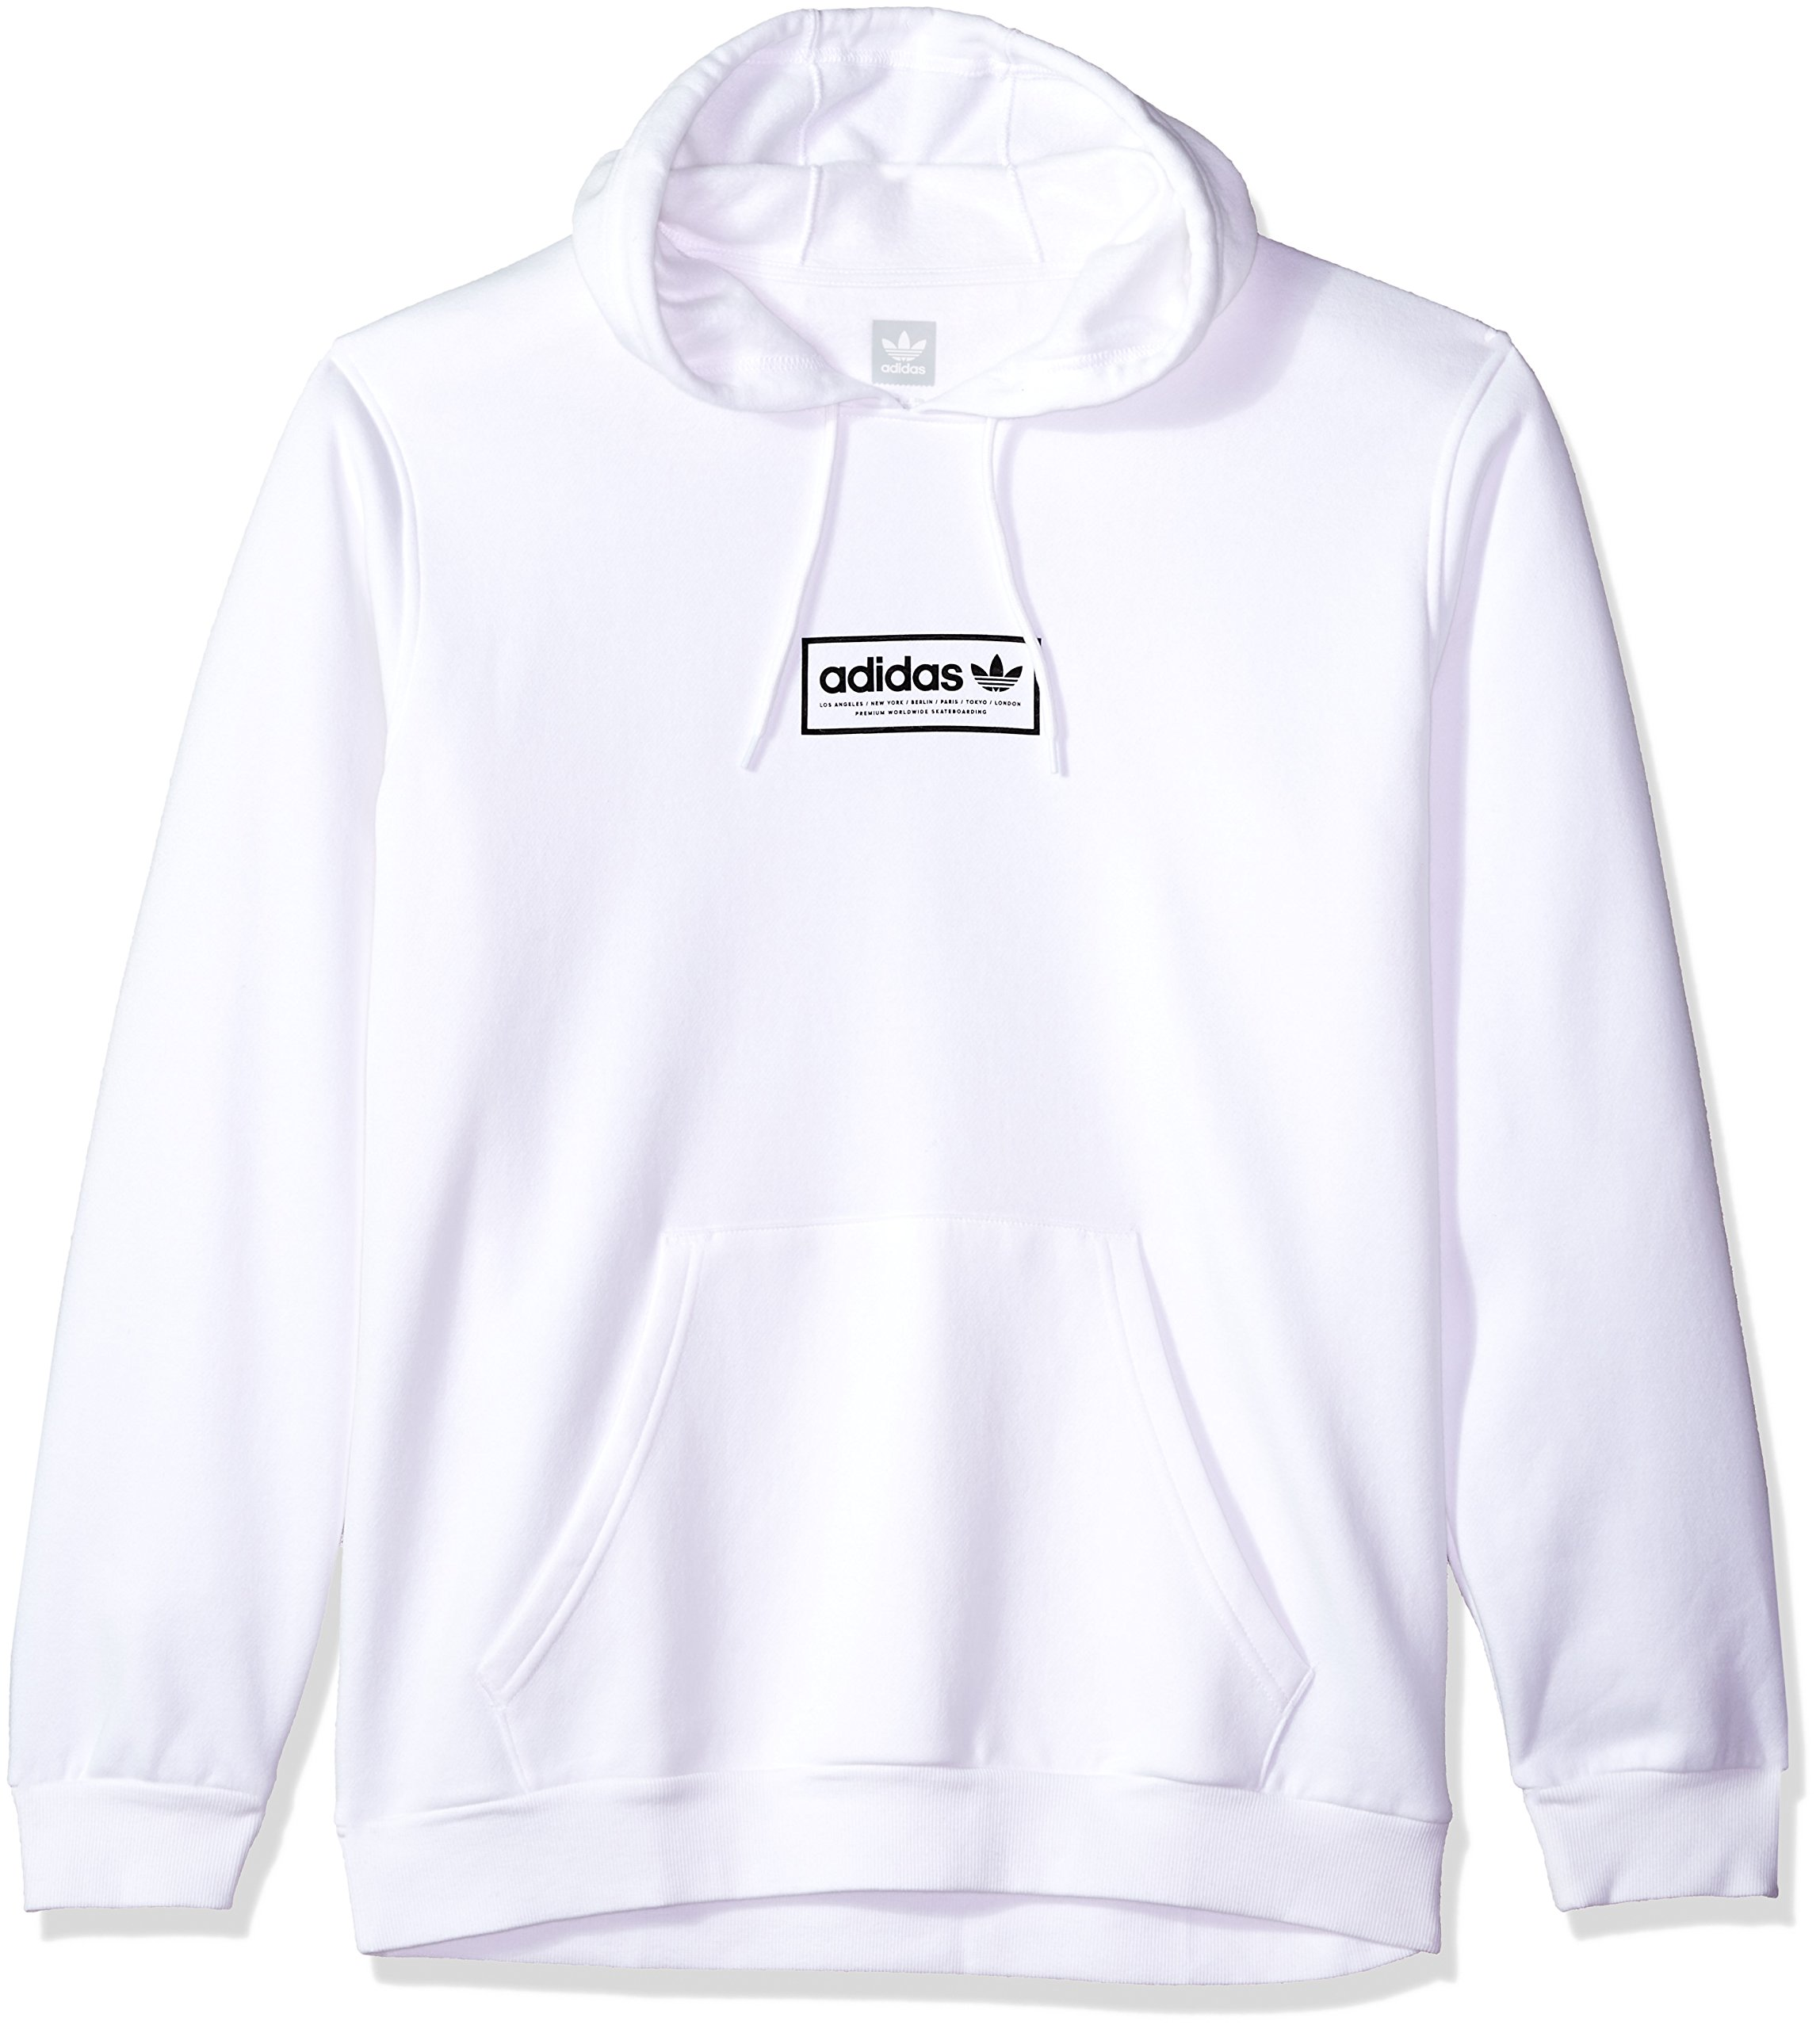 Galleon - Adidas Originals Men s Skateboarding Spell Out Hoodie ... 74b494004